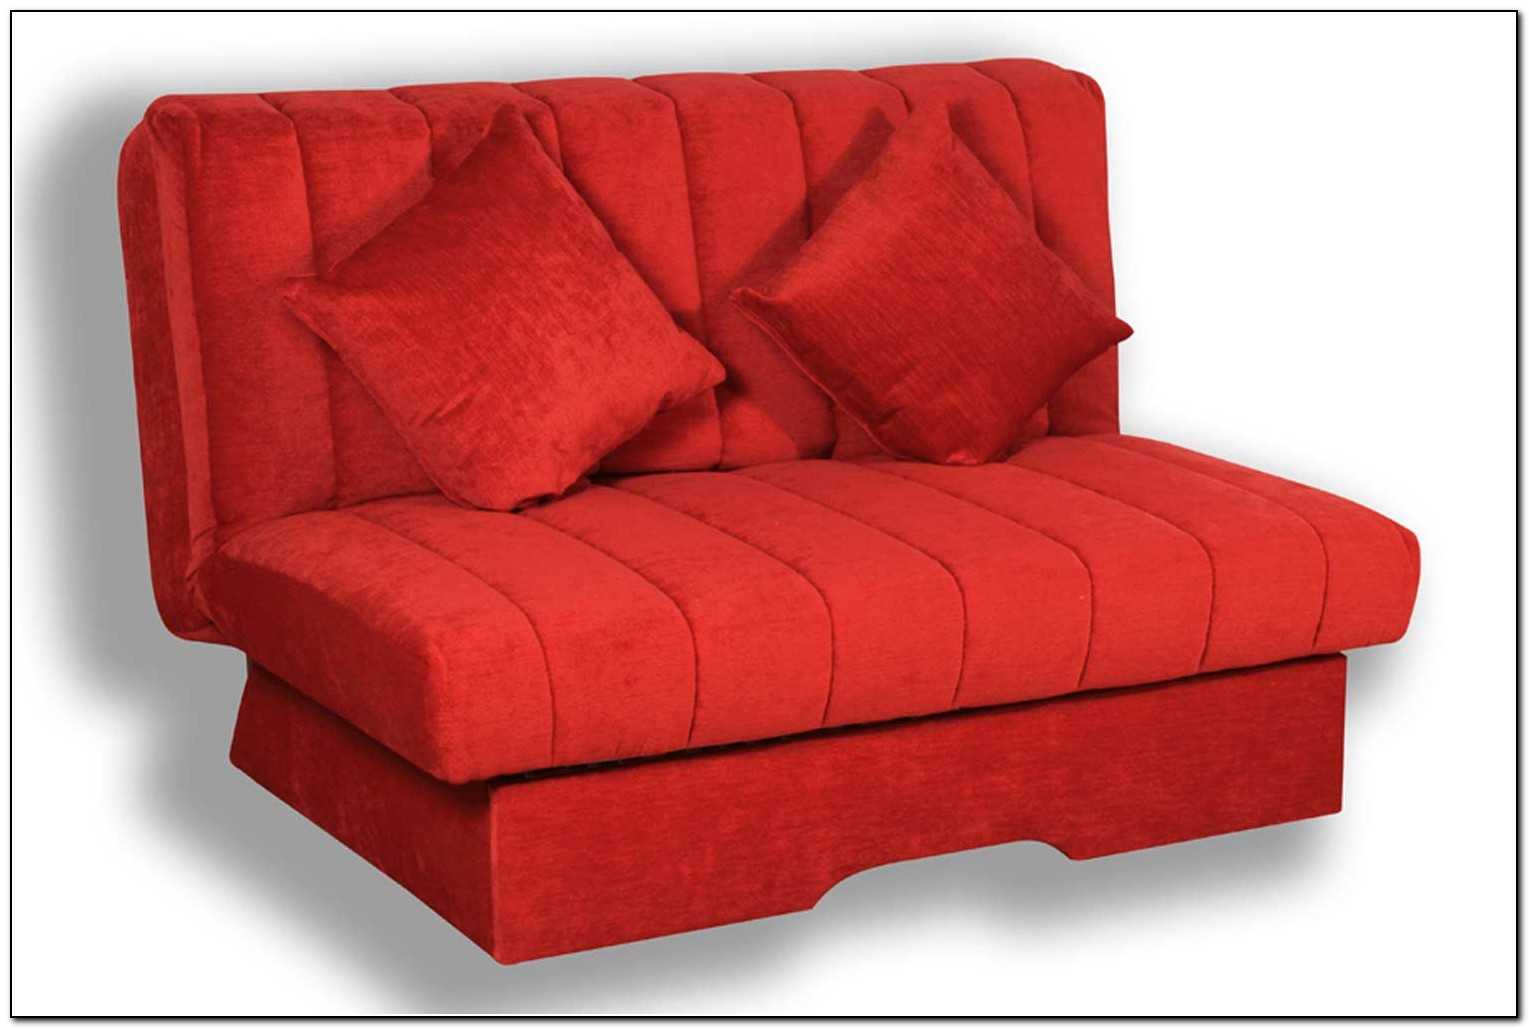 Cheap Sofa Beds Uk Under £100